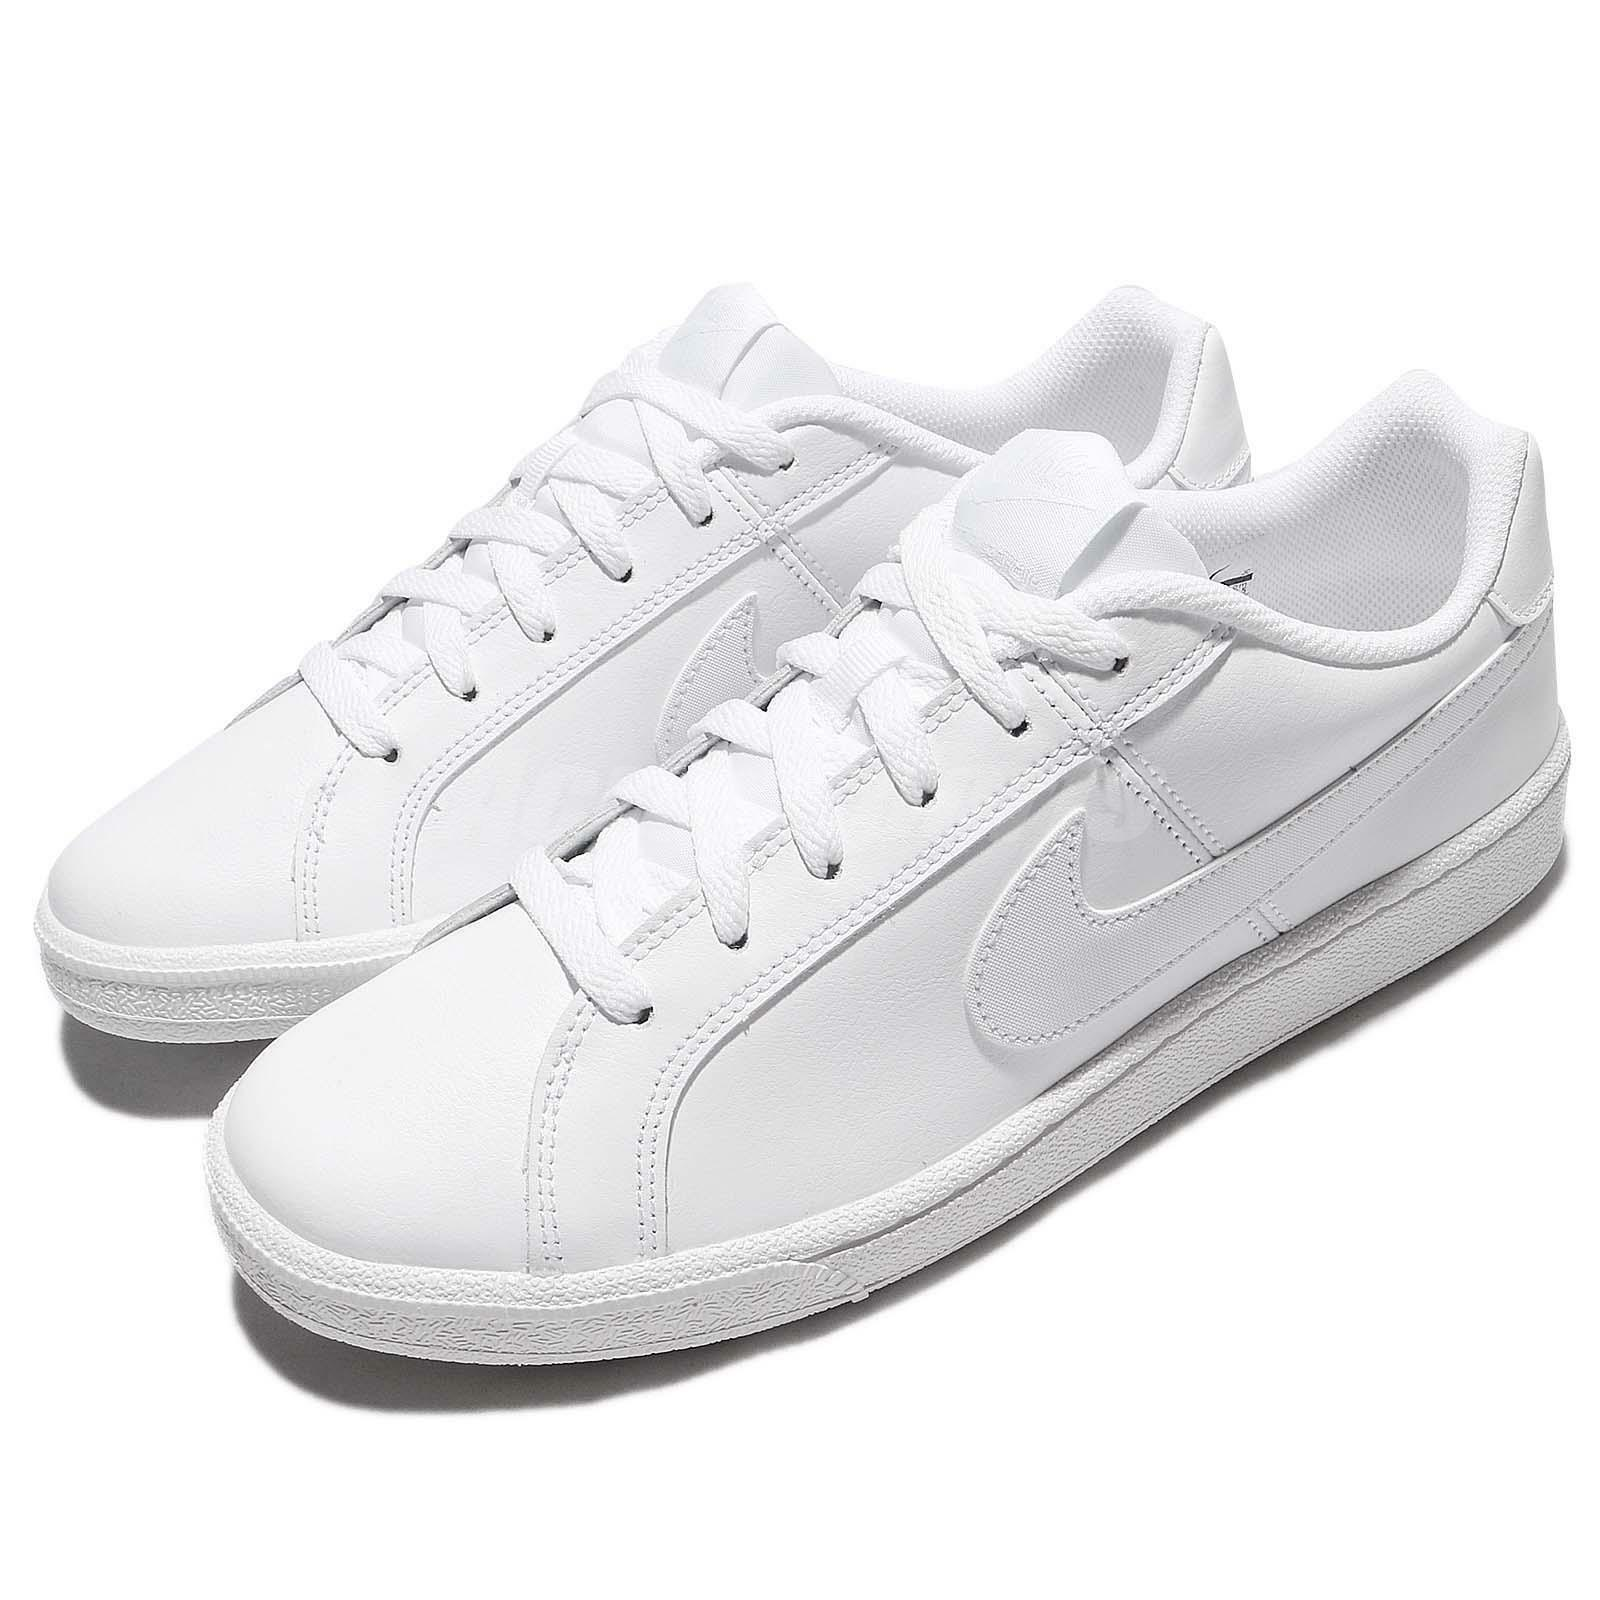 fce537ac65484 ... Nike Court Royale Royale Royale Low Men Casual Shoes Sneakers Trainers  Pick 1 c83b5f ...